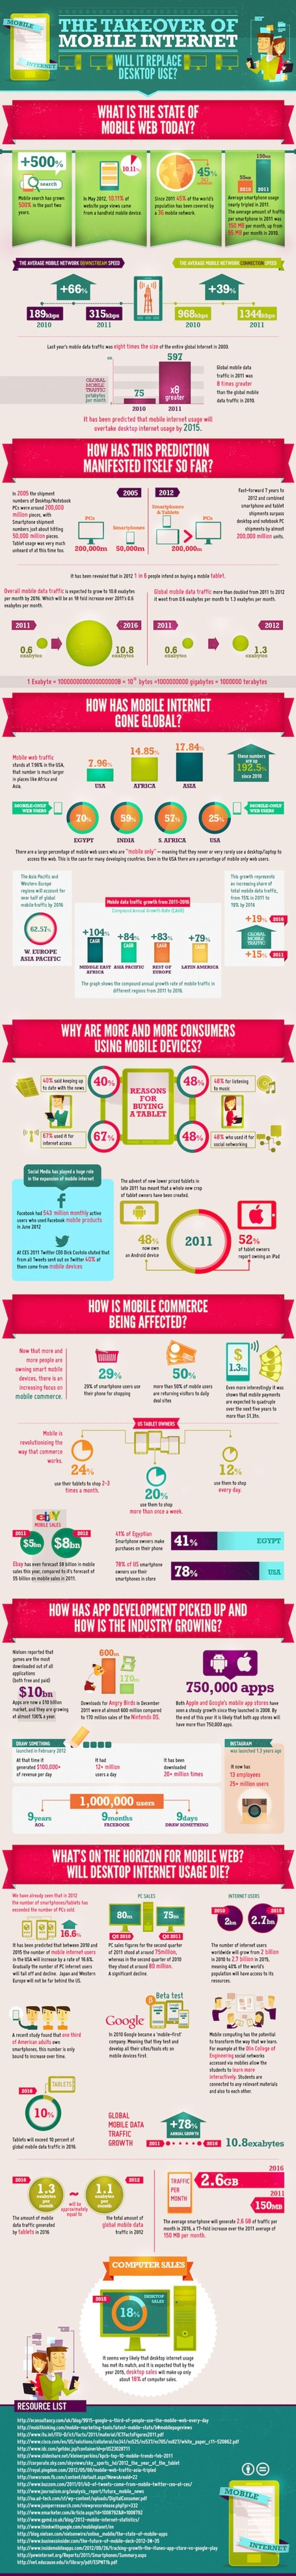 Will Mobile Internet Replace Desktop? [INFOGRAPHIC] | EPIC Infographic | Scoop.it